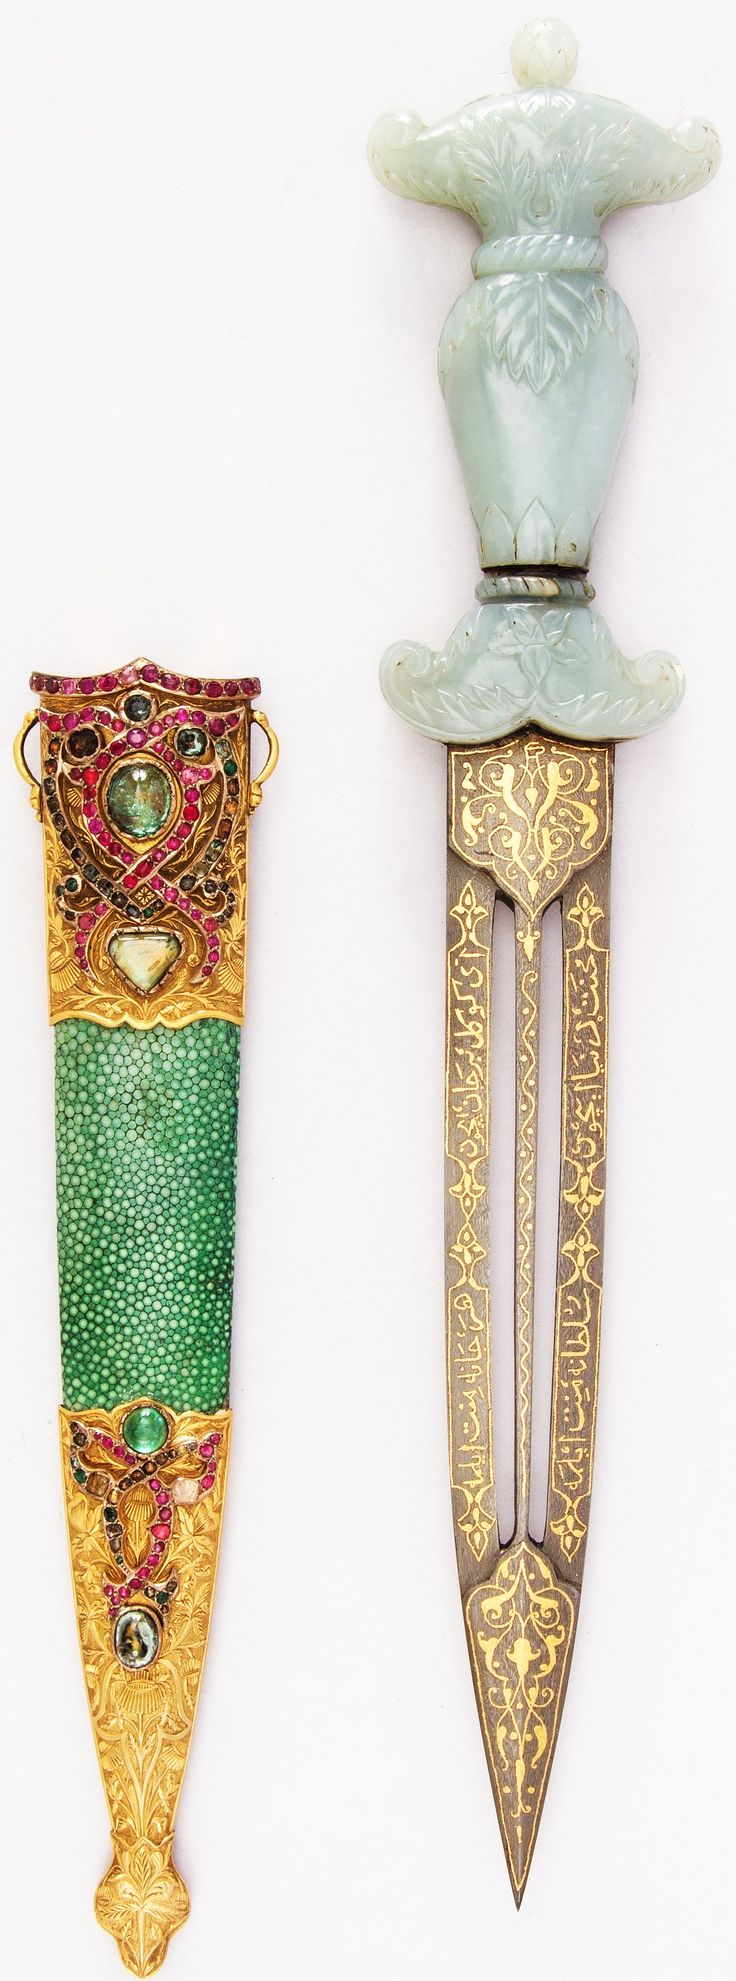 Ottoman dagger, 18th century, jade, steel, gold, copper, shagreen, gemstone, L. with sheath 14 5/16 in. (36.4 cm); L. without sheath 13 5/16 in. (33.8 cm); W. 2 1/2 in. (6.4 cm); Wt. 9.1 oz. (258 g); Wt. of sheath 3.7 oz. (104.9 g), Met Museum, Bequest of George C. Stone, 1935.